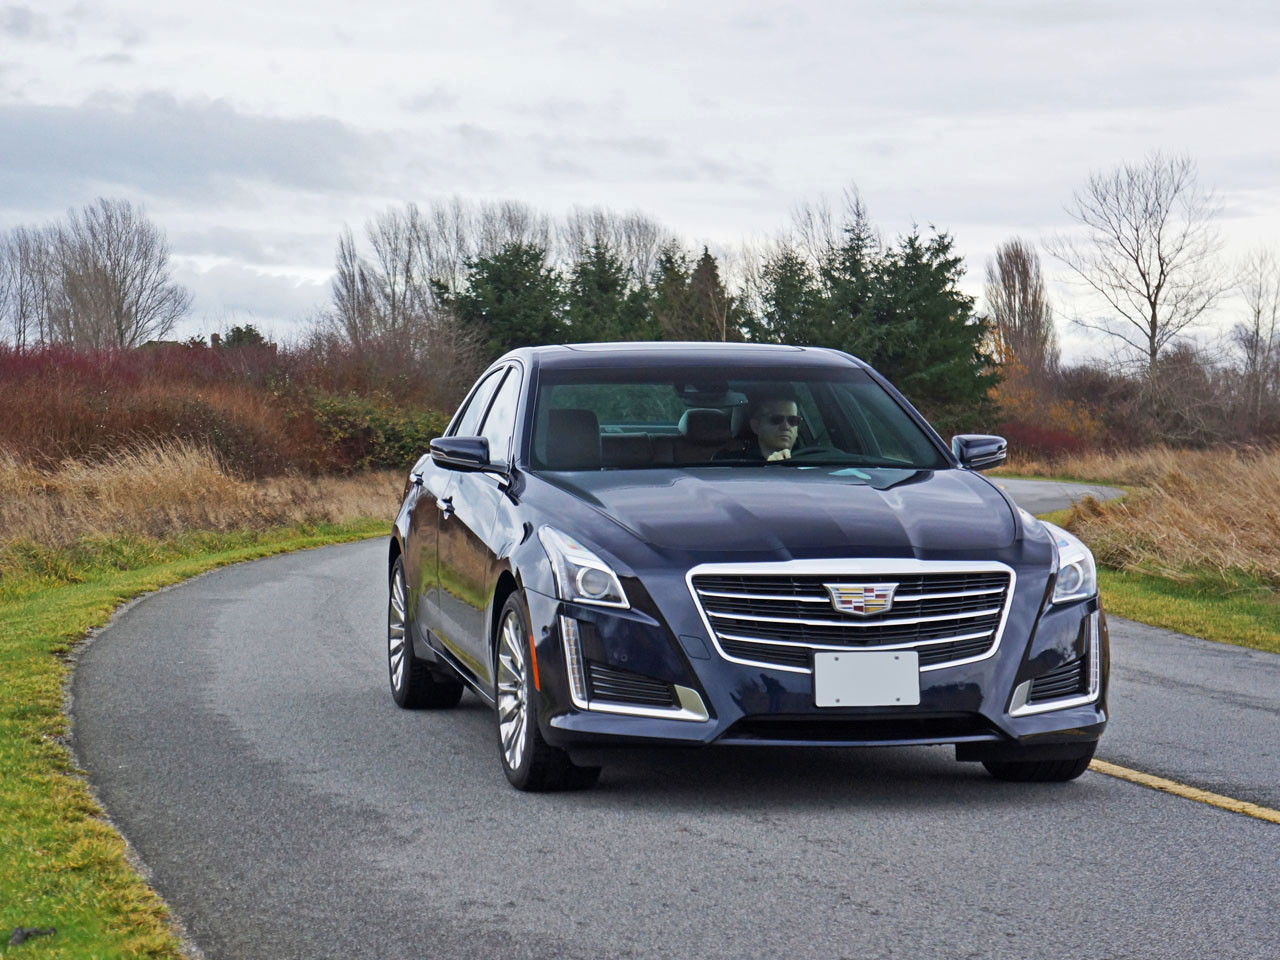 2016 Cadillac CTS 3 6L Premium AWD Road Test Review